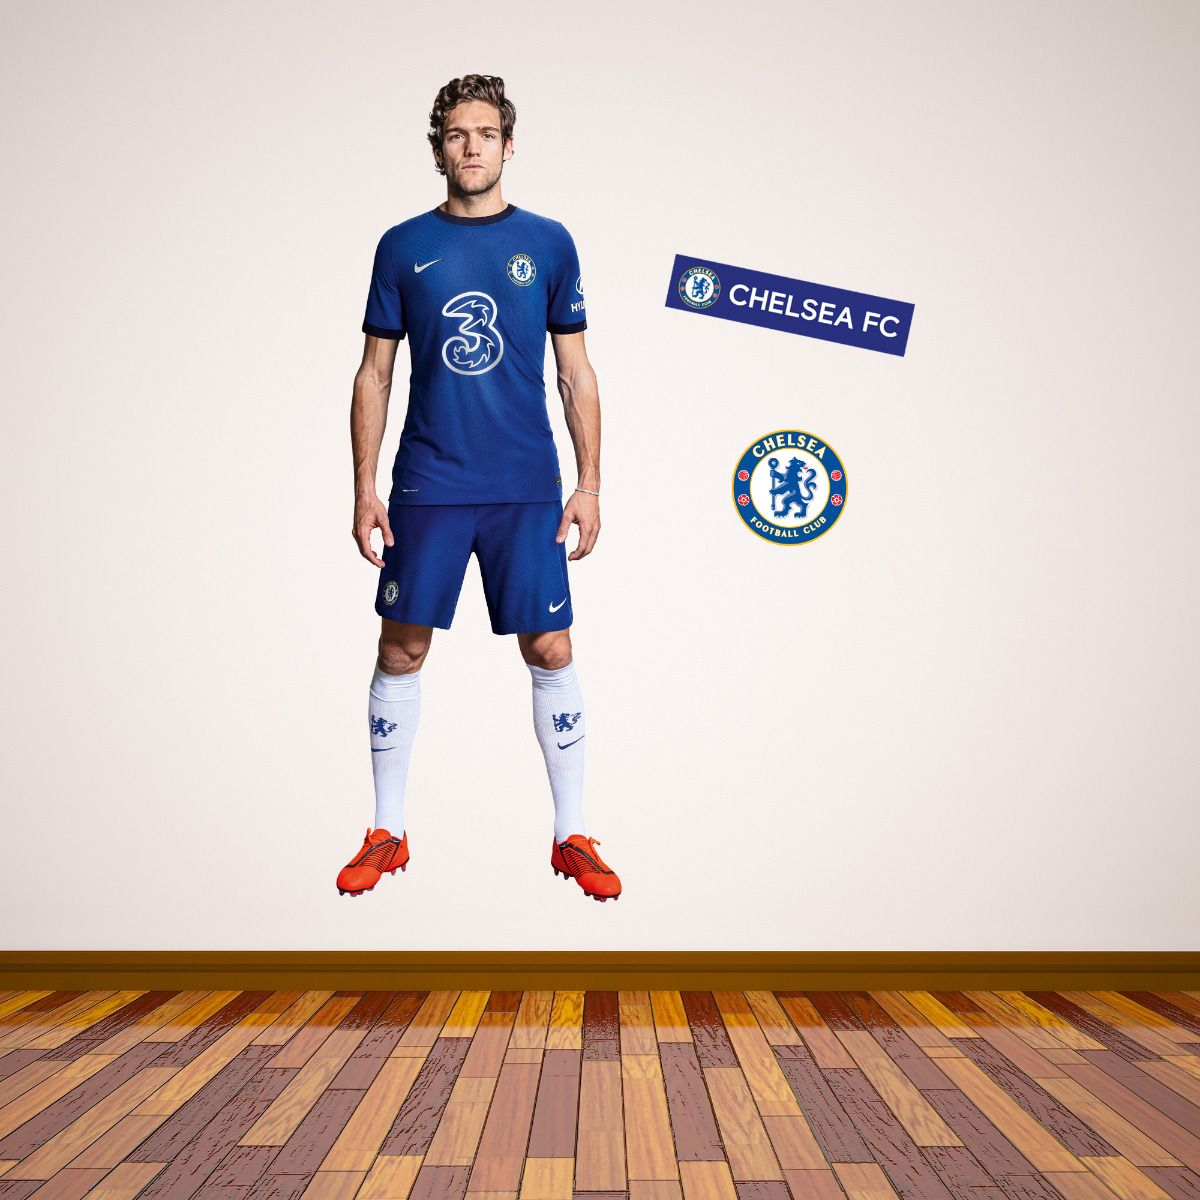 Chelsea FC - Marcos Alonso 20/21 Player Decal + CFC Wall Sticker Set